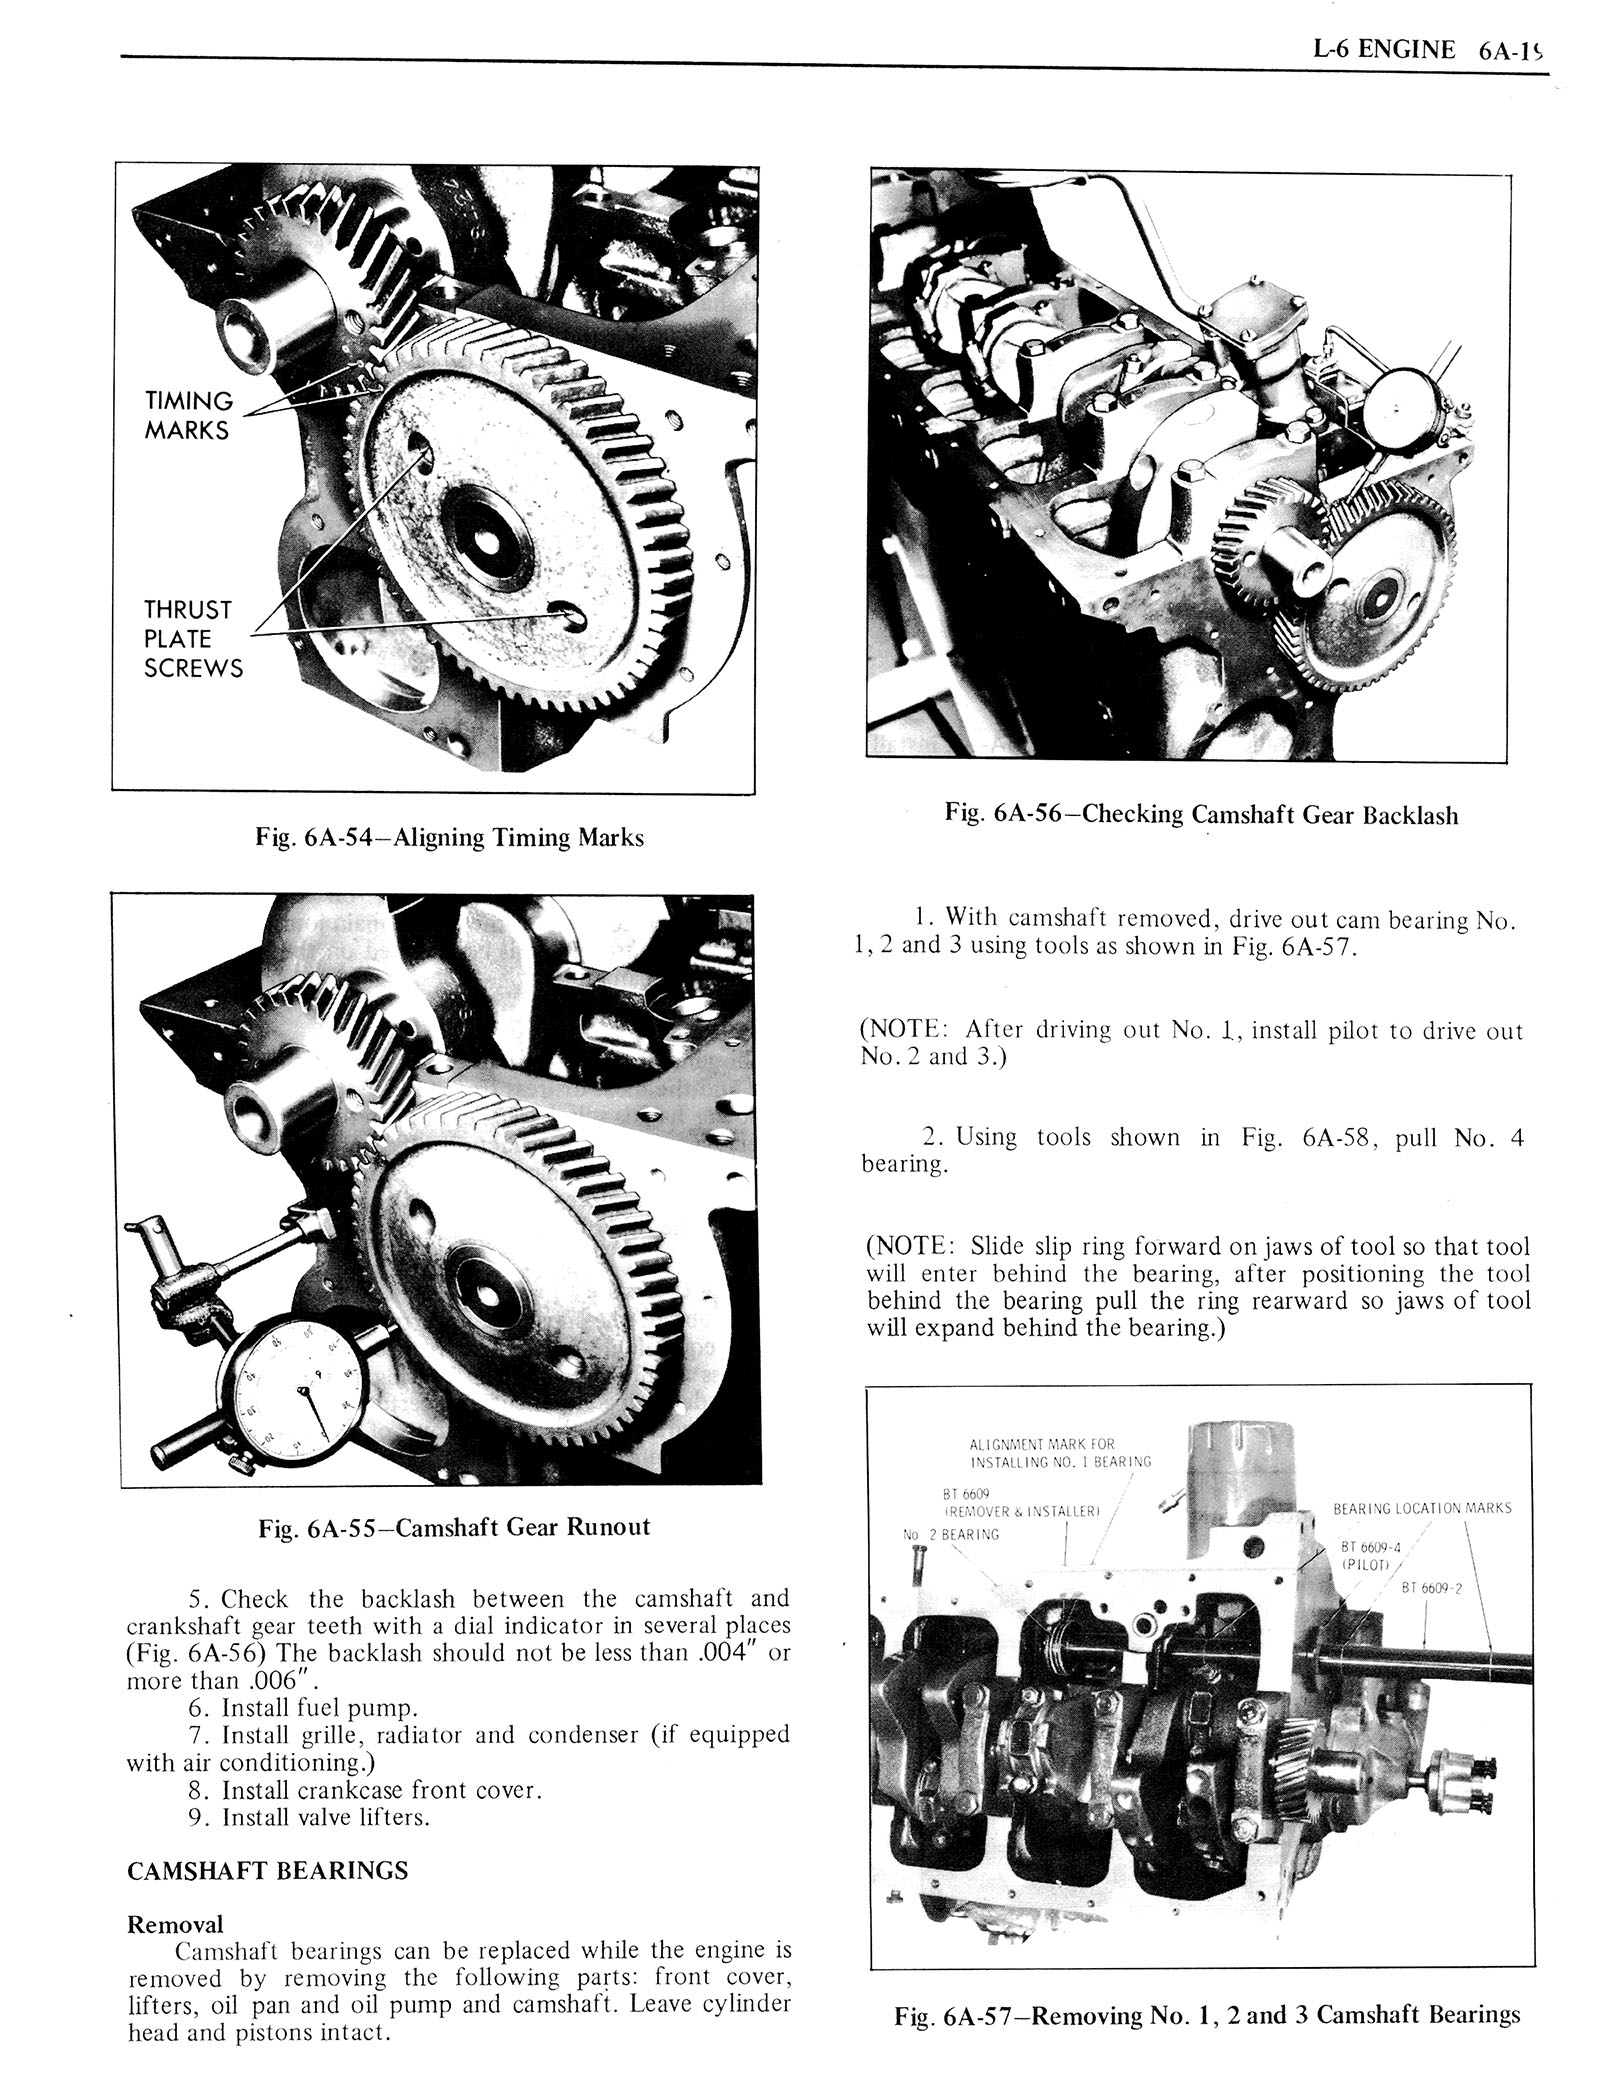 1976 Oldsmobile Service Manual page 406 of 1390